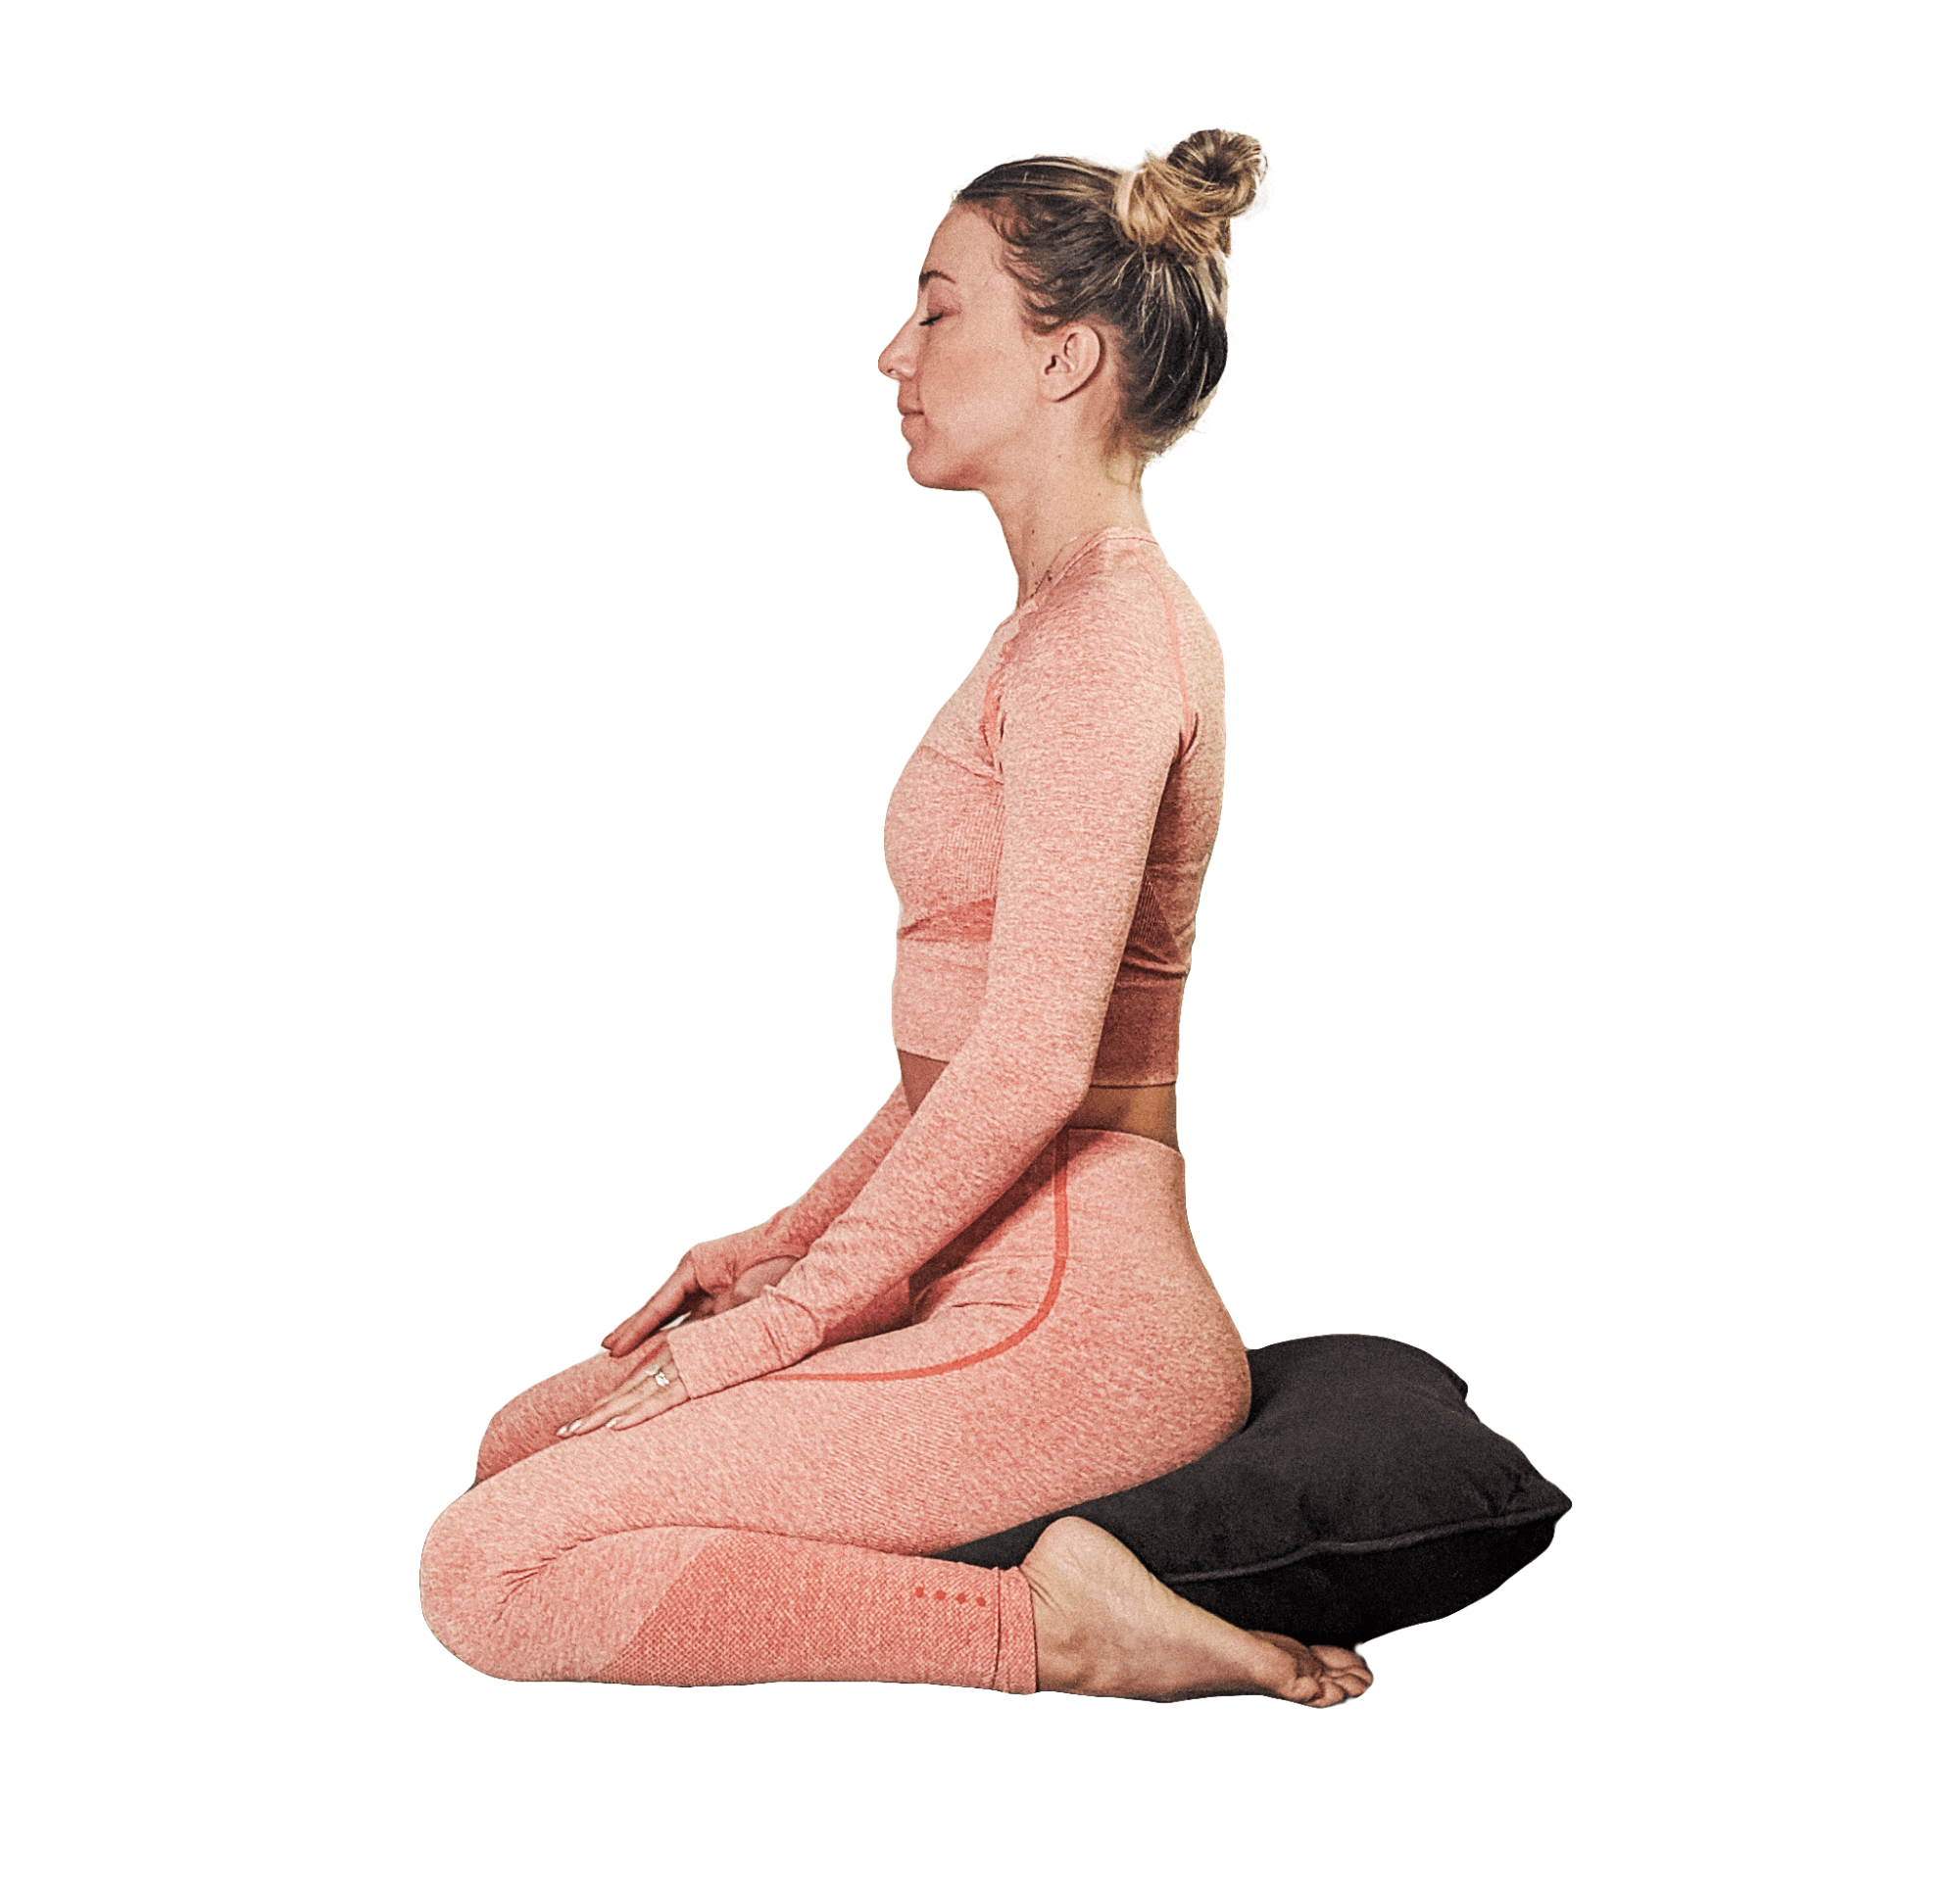 KNEELING ON A PILLOW (HERO'S POSE). Kneel with a pillow under your hips. Your feet may be under the pillow or wider than (outside of) the pillow.